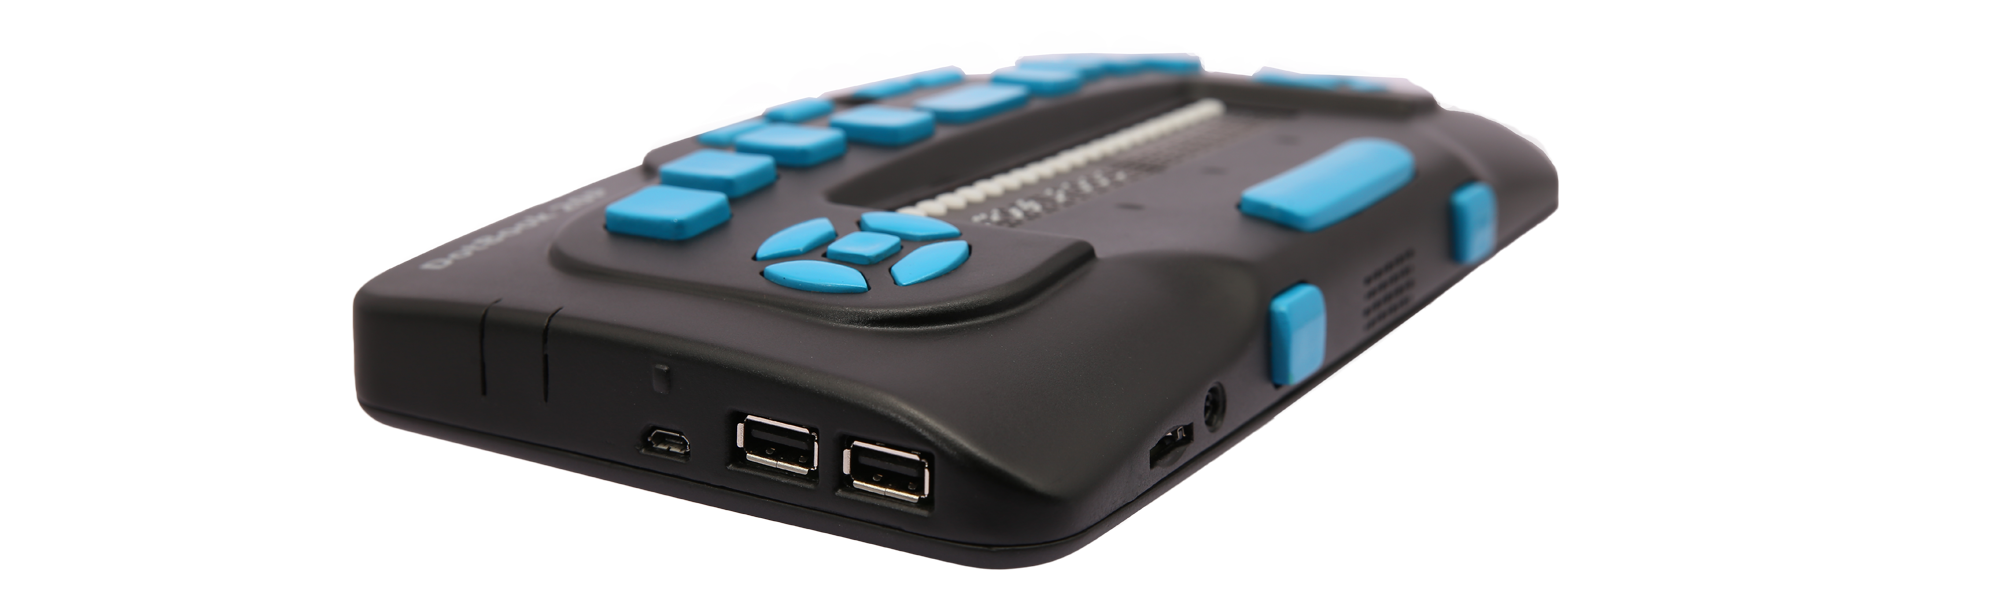 The DotBook 20P with USB and SD Card Port can be seen here.